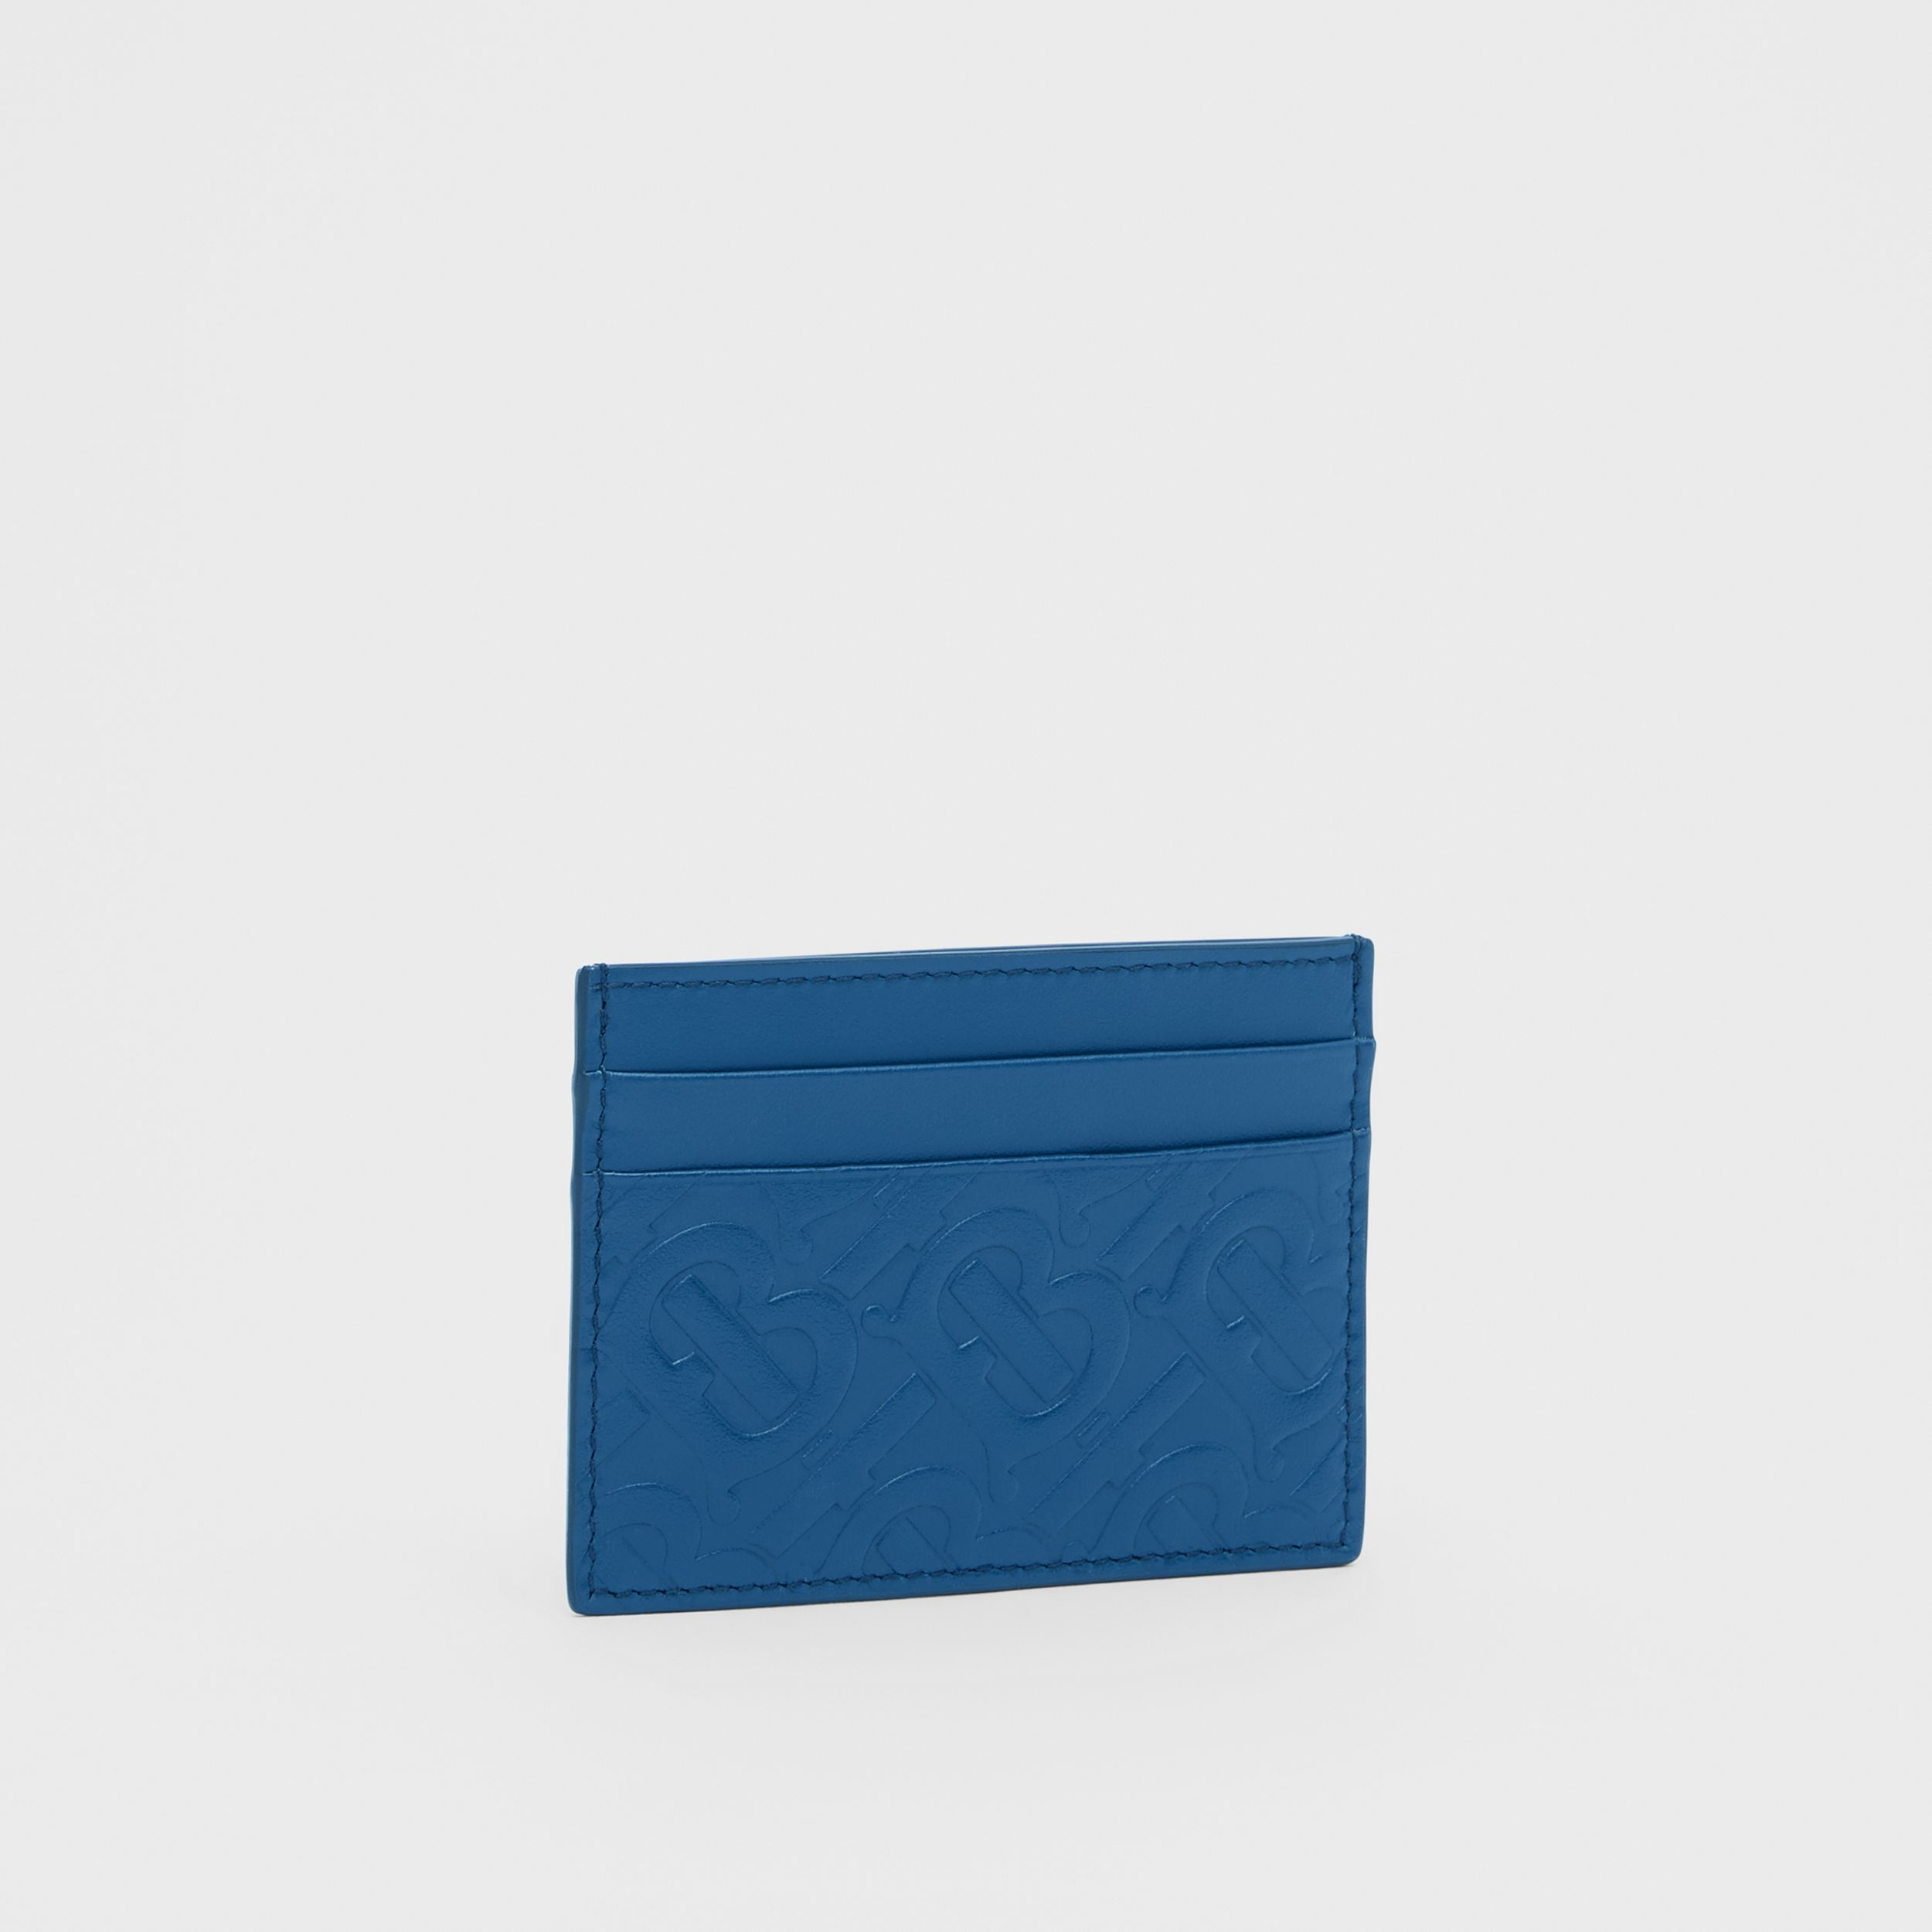 Monogram Leather Card Case in Pale Canvas Blue - Men | Burberry United Kingdom - 4